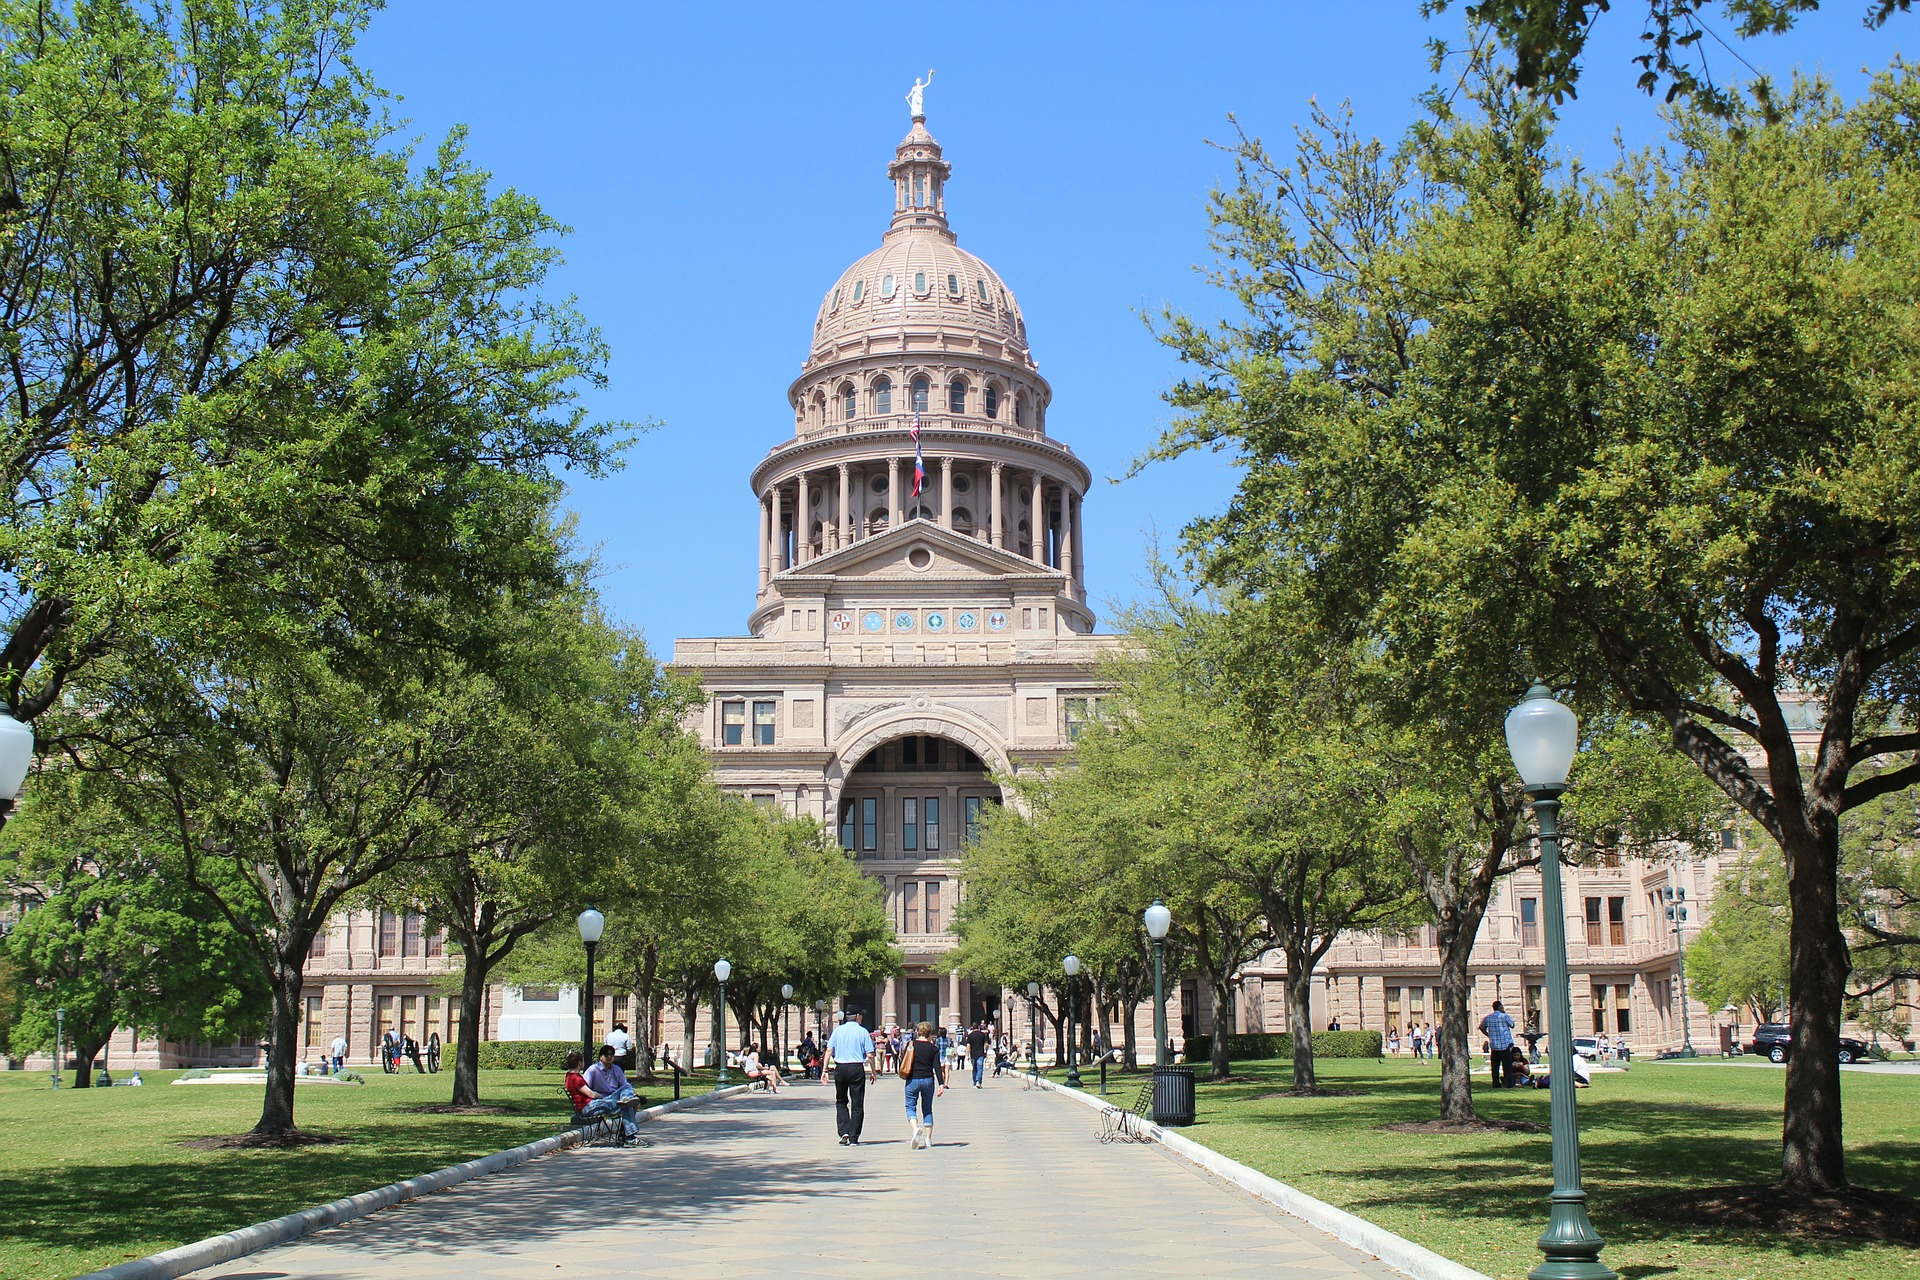 Texas State Capitol - Major Tourist Attraction In Austin, Texas